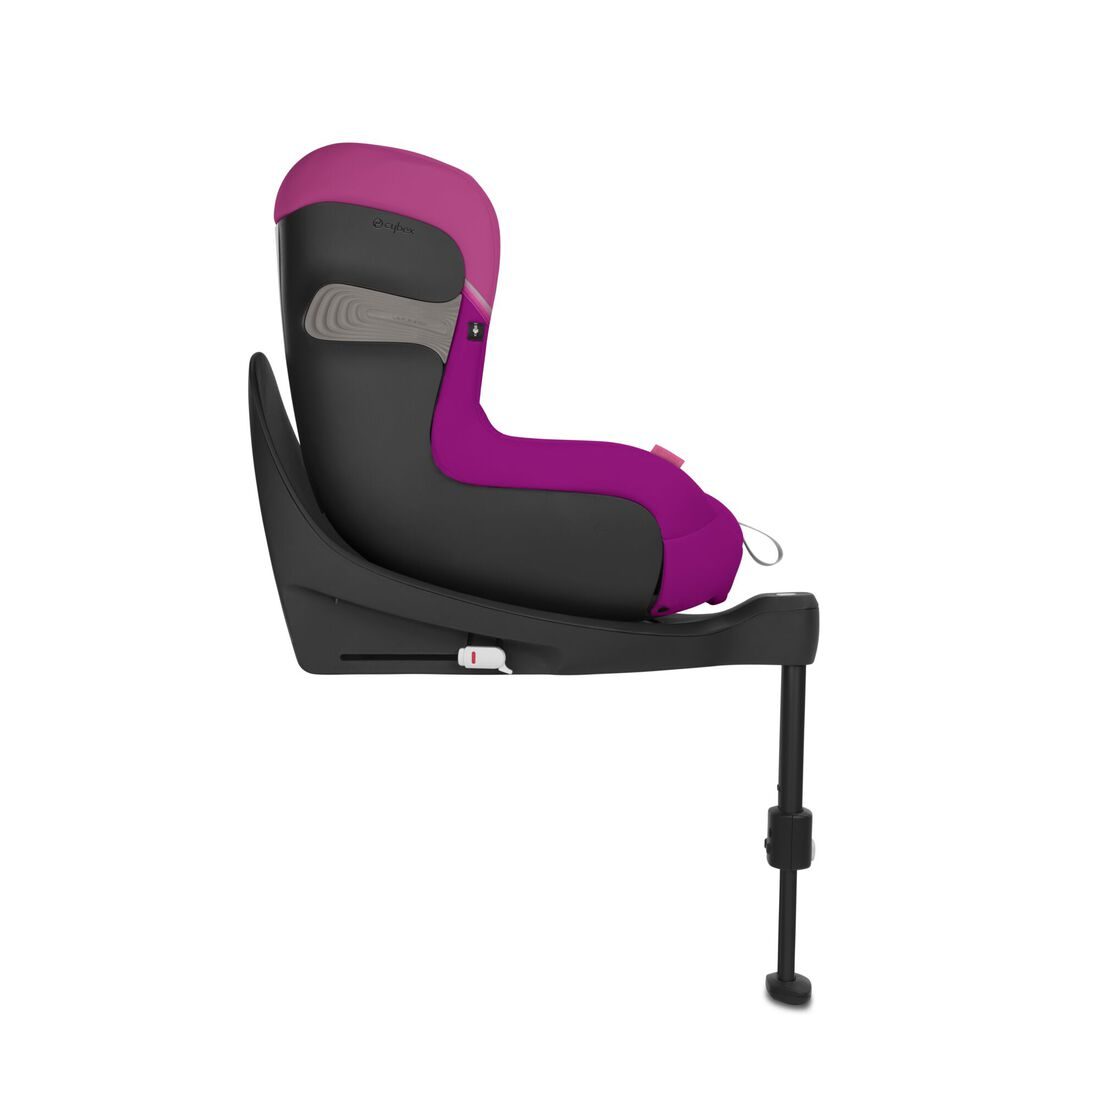 CYBEX Sirona S2 i-Size - Magnolia Pink in Magnolia Pink large image number 4